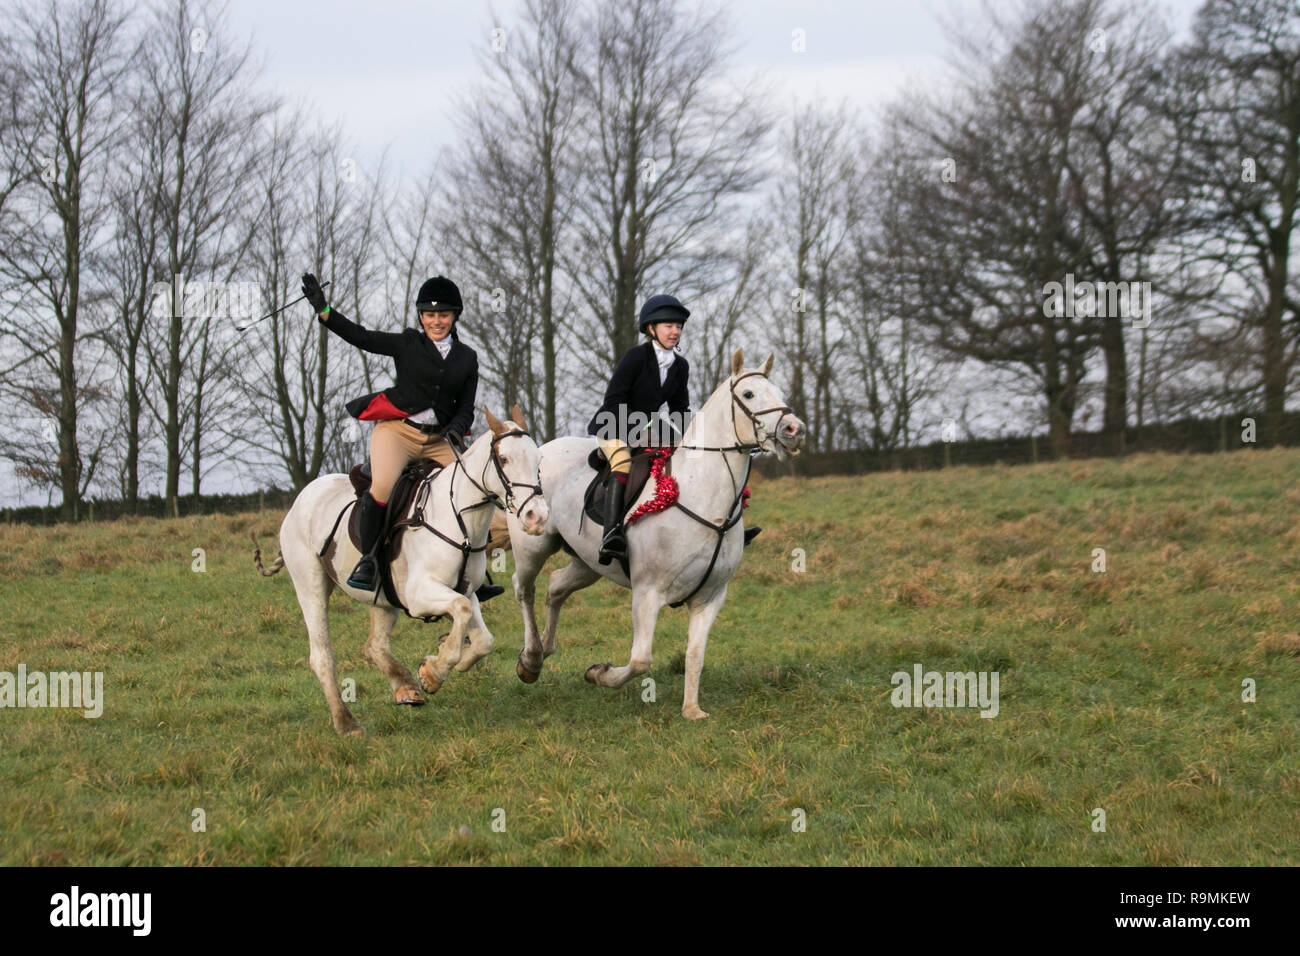 Chorley, Lancashire, UK. 26th Dec. 2018. Boxing day Hunt at Rivington. Horses and hounds returned to Rivington for Holcombe Hunt's traditional Boxing Day meet. Hundreds of spectators gathered to support the ride out, as they set off for a three-hour ride following the sound of the horn.  Hunting live quarry with dogs was banned in 2004, after the Speaker of the Commons invoked the Parliament Act to force the legislation through. The Holcombe Hunt holds meets across the whole of Lancashire, but their Boxing Day gathering is traditionally held at Rivington. Credit: MediaWorldImages/Alamy Live Ne - Stock Image